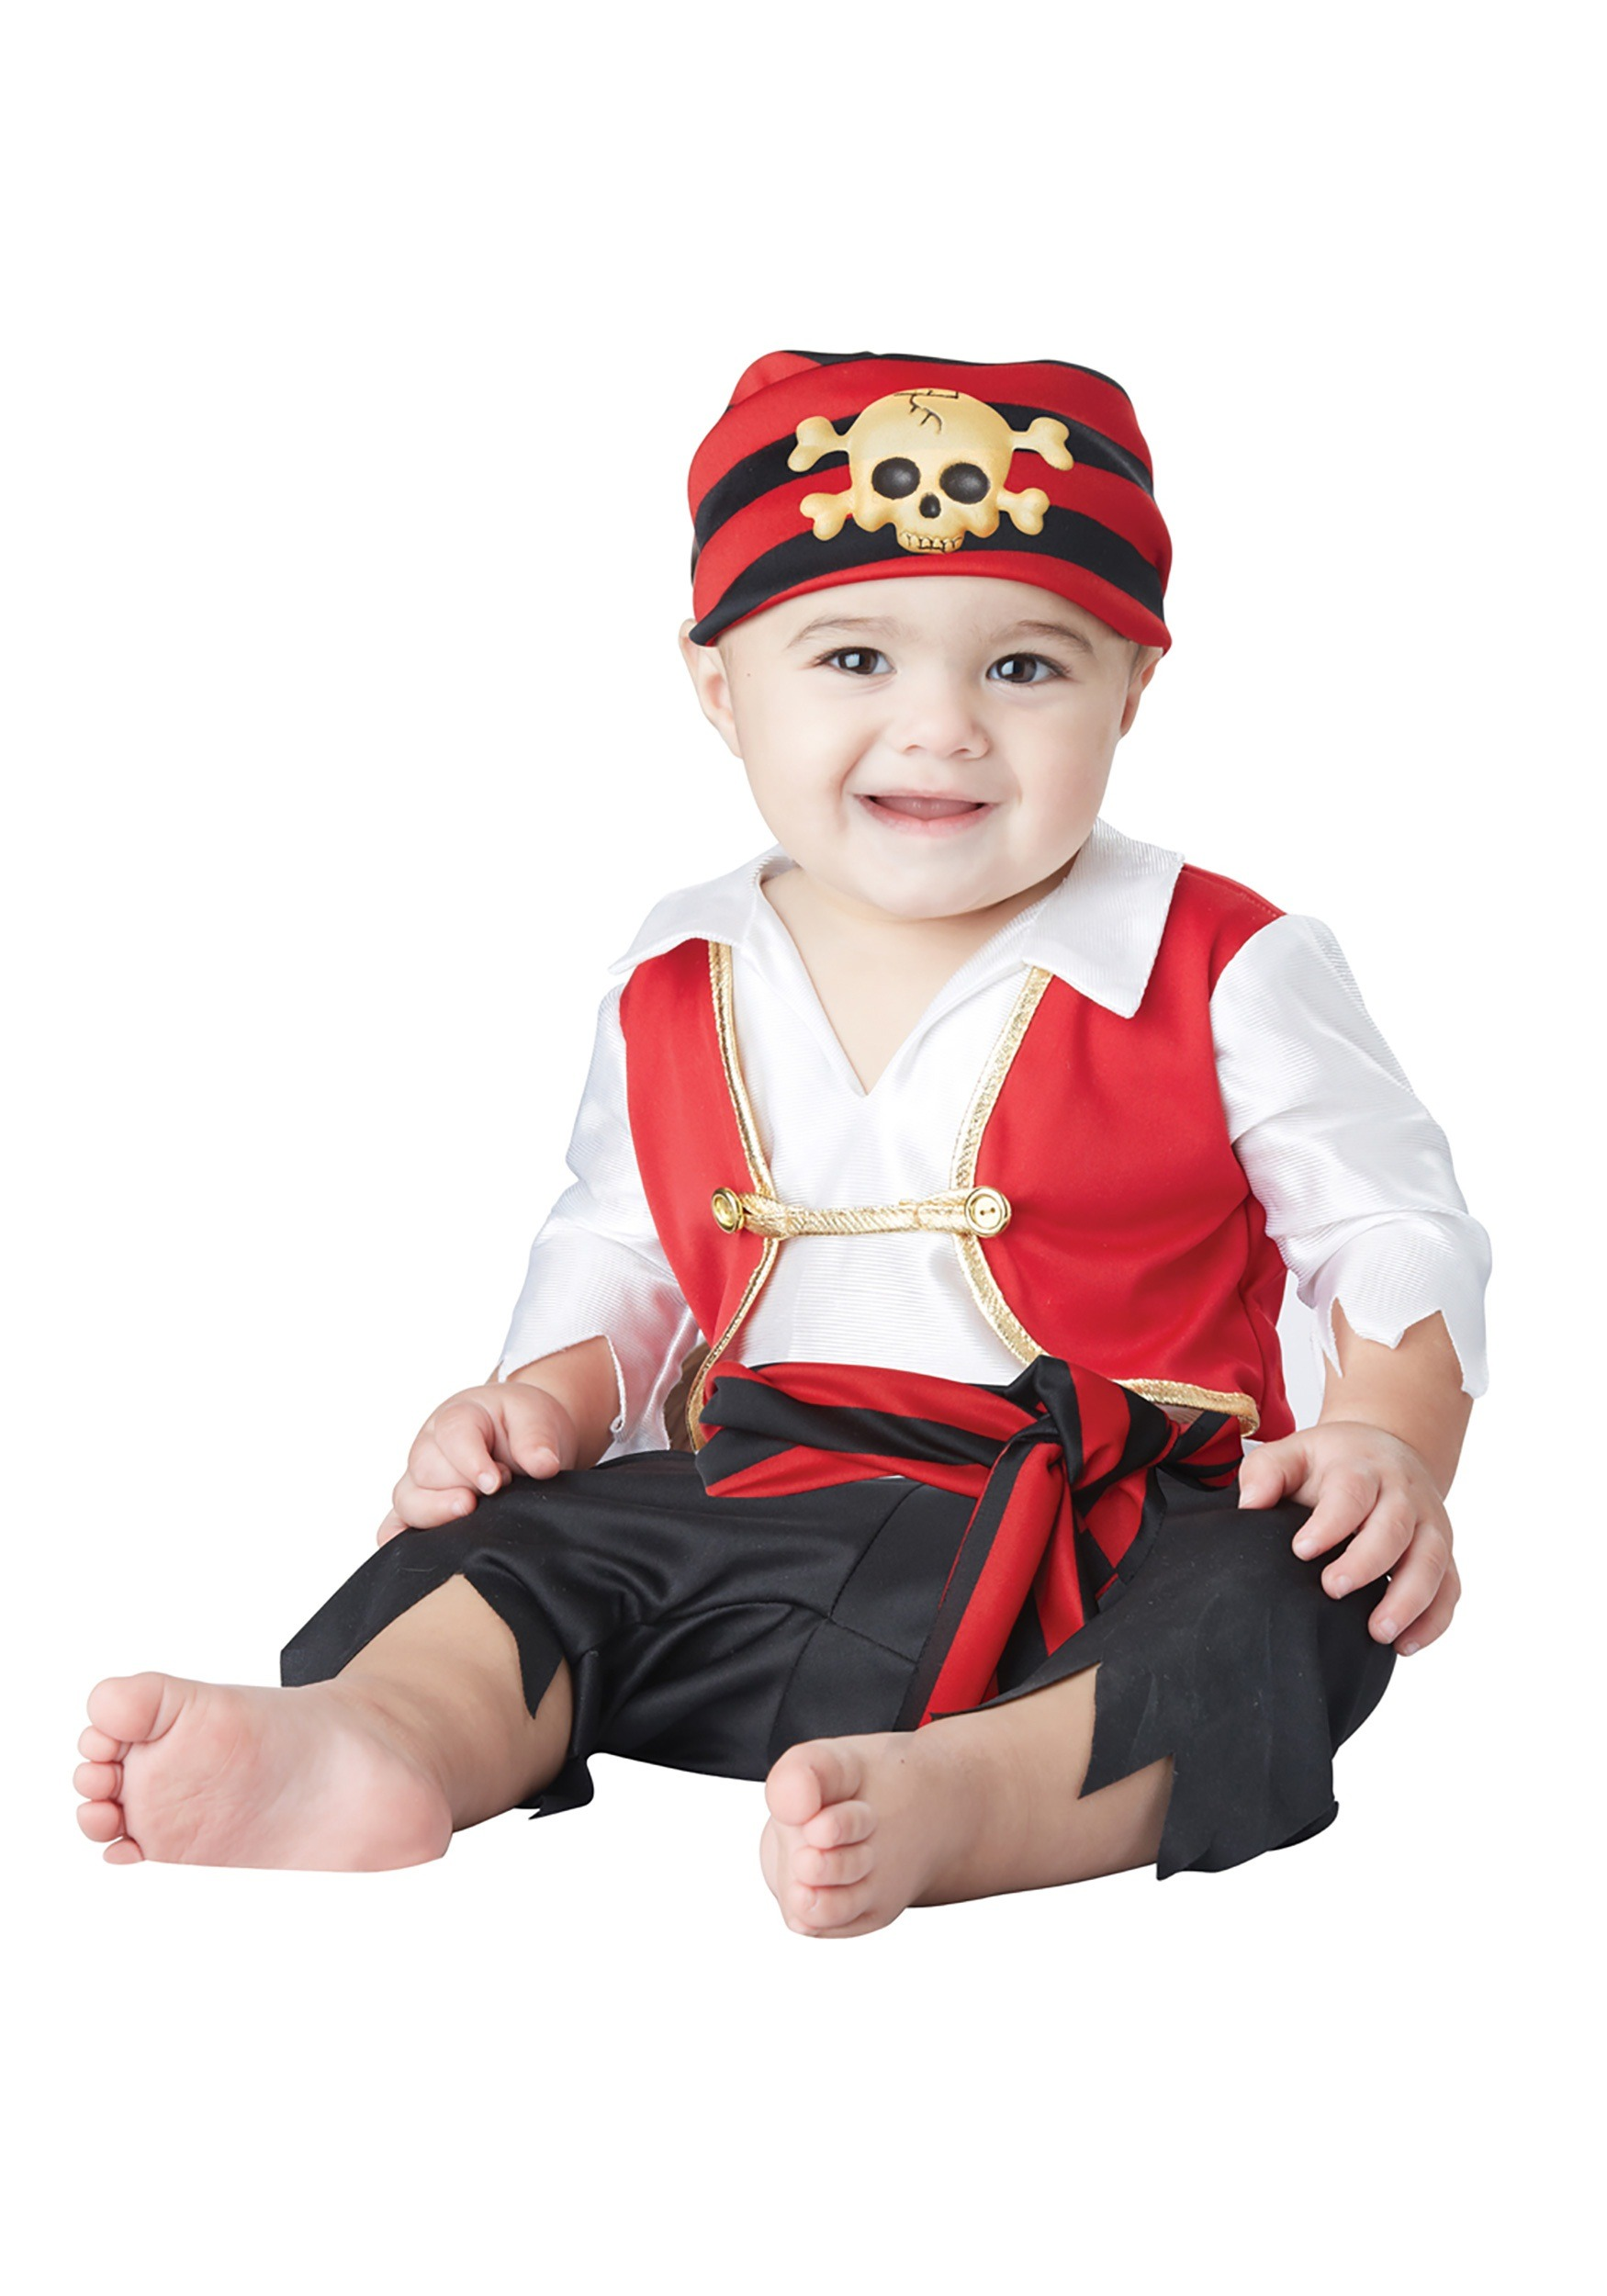 04c0385d88a Pirate Costume Baby Boy & Super Cute Pirate Costume. Perfect For ...